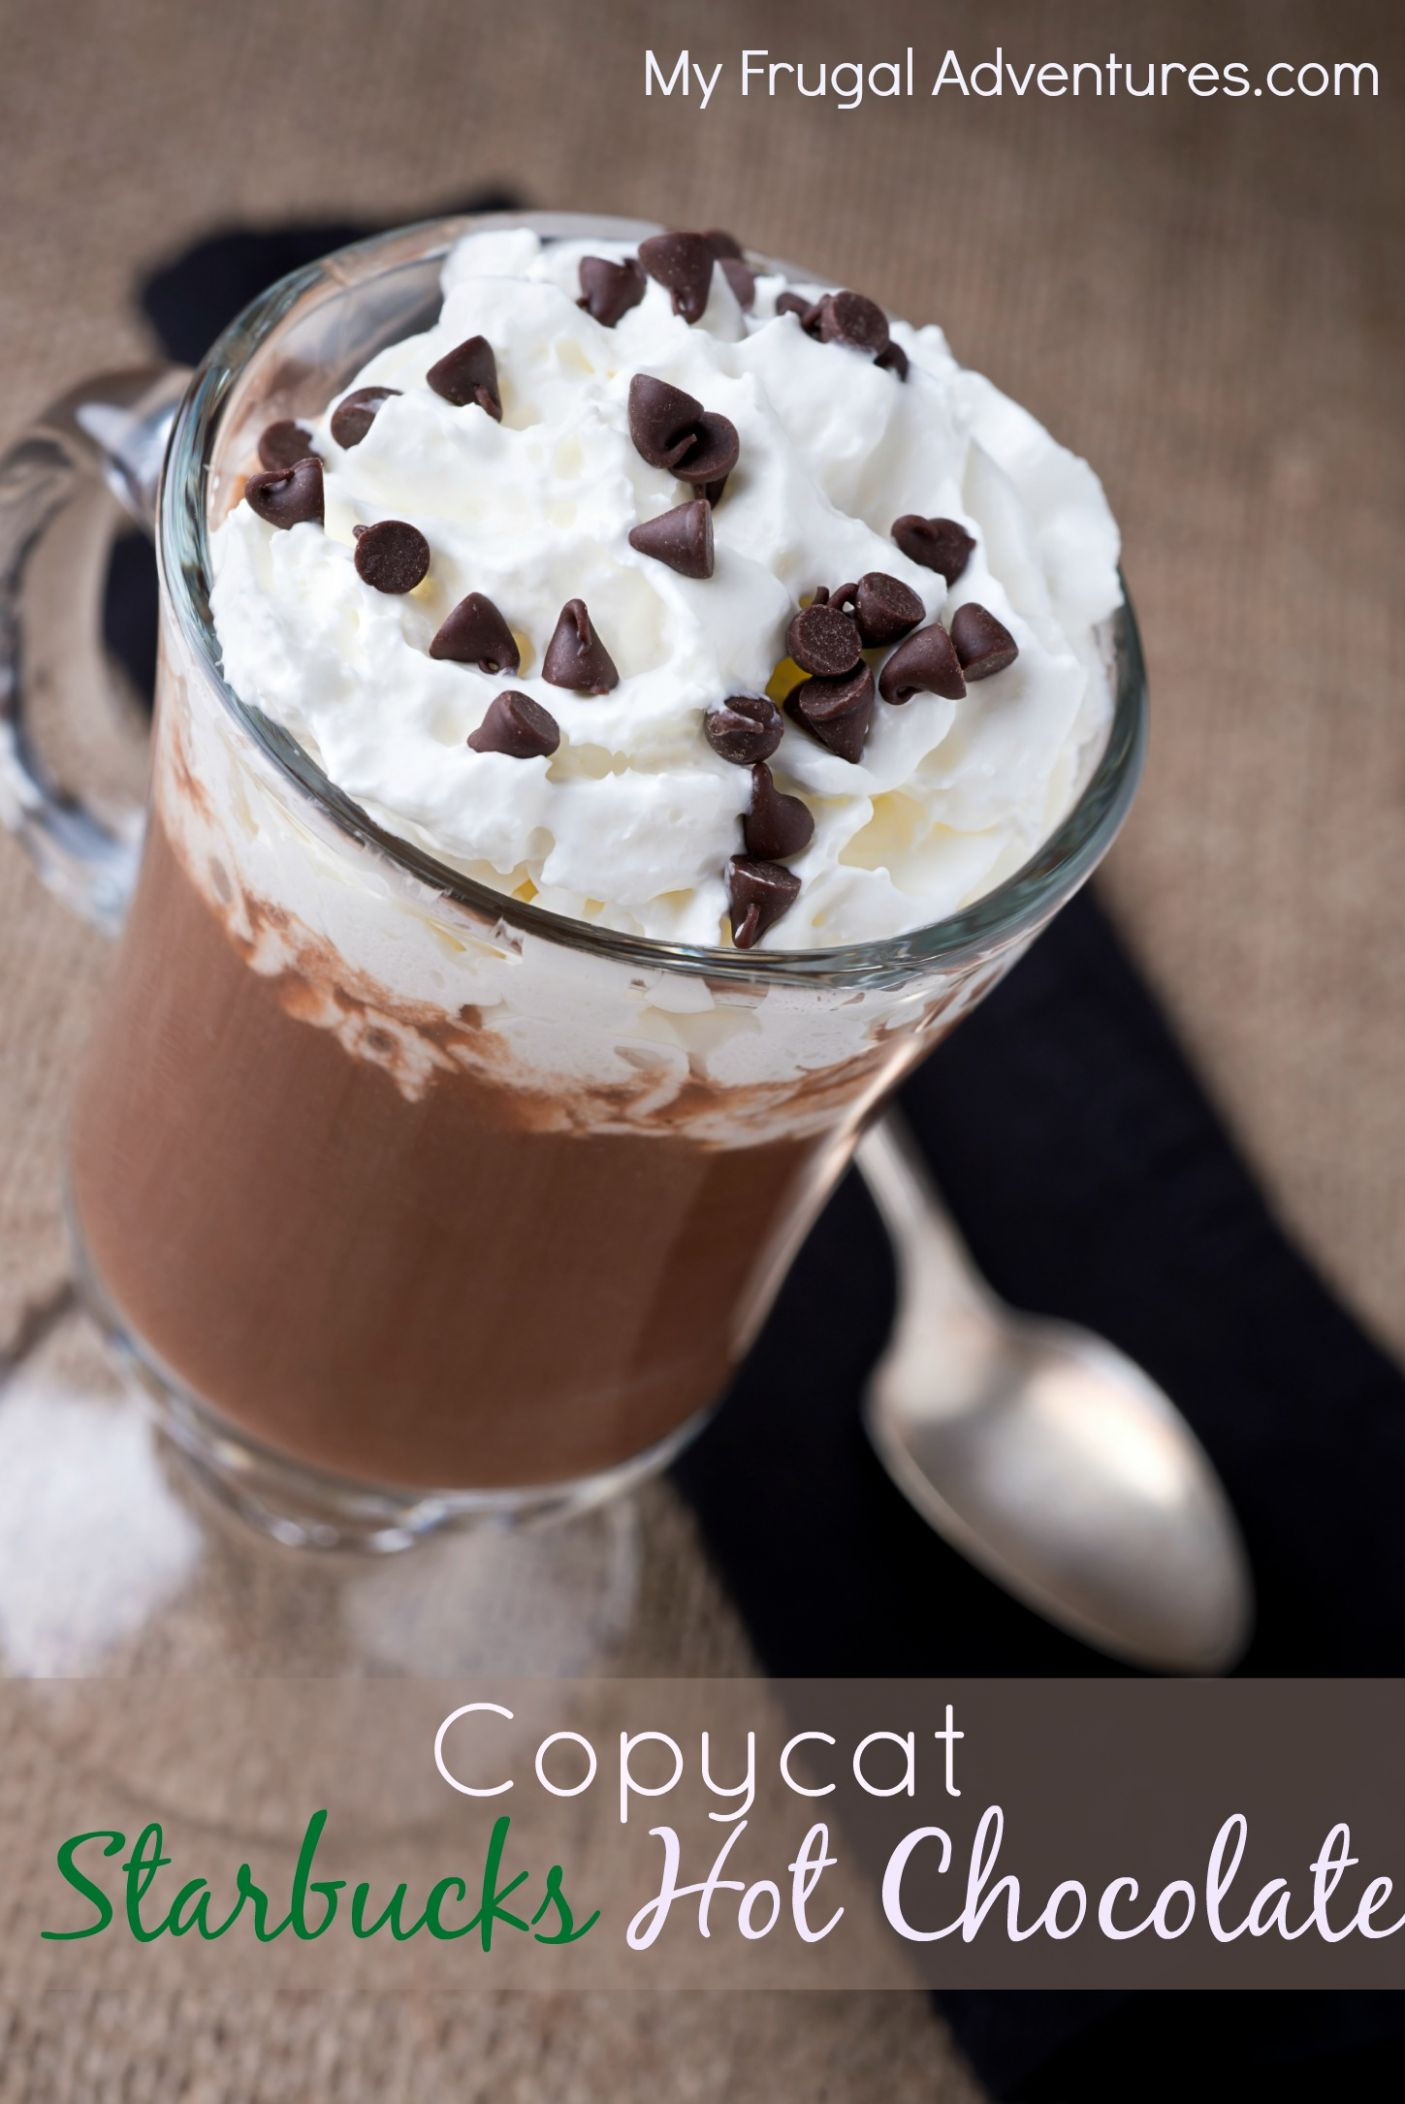 Copycat Starbucks Hot Chocolate Recipe (Quick & Easy!)